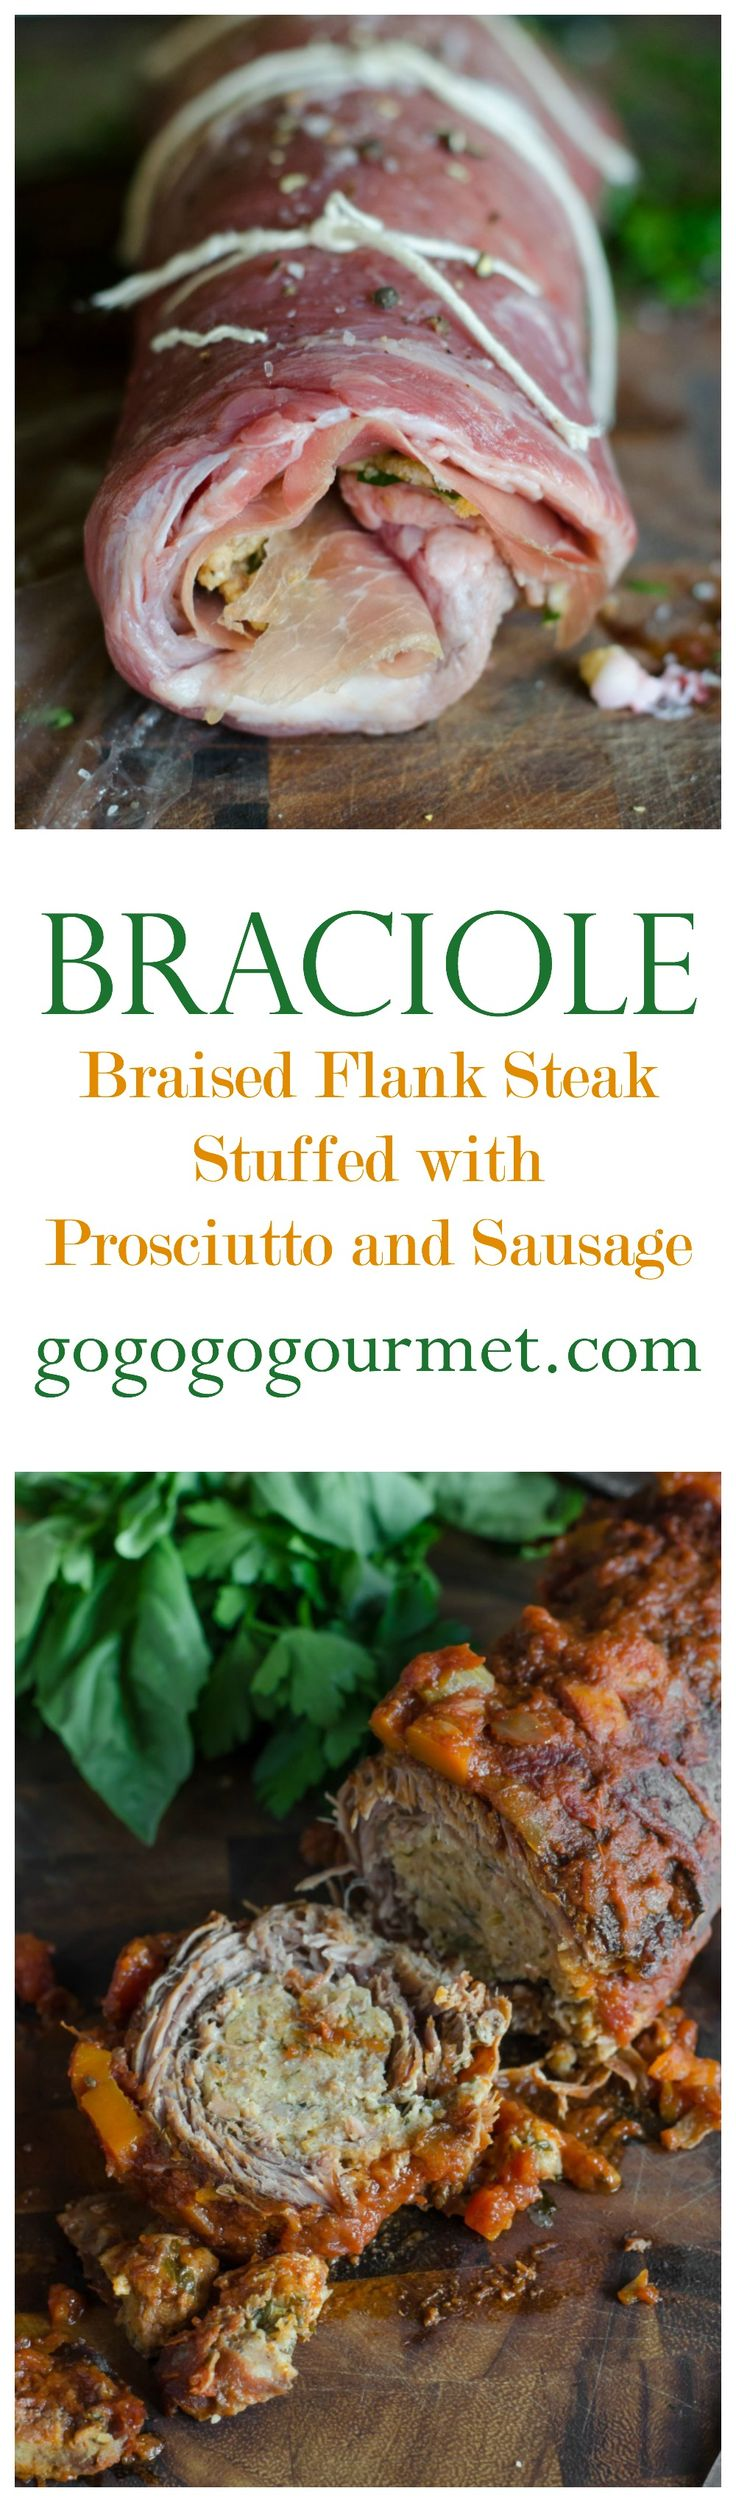 Braciole- Flank steak rolled with prosciutto and a sausage bread crumb stuffing, then braised in a tomato sauce until tender. | Go Go Go Gourmet @gogogogourmet